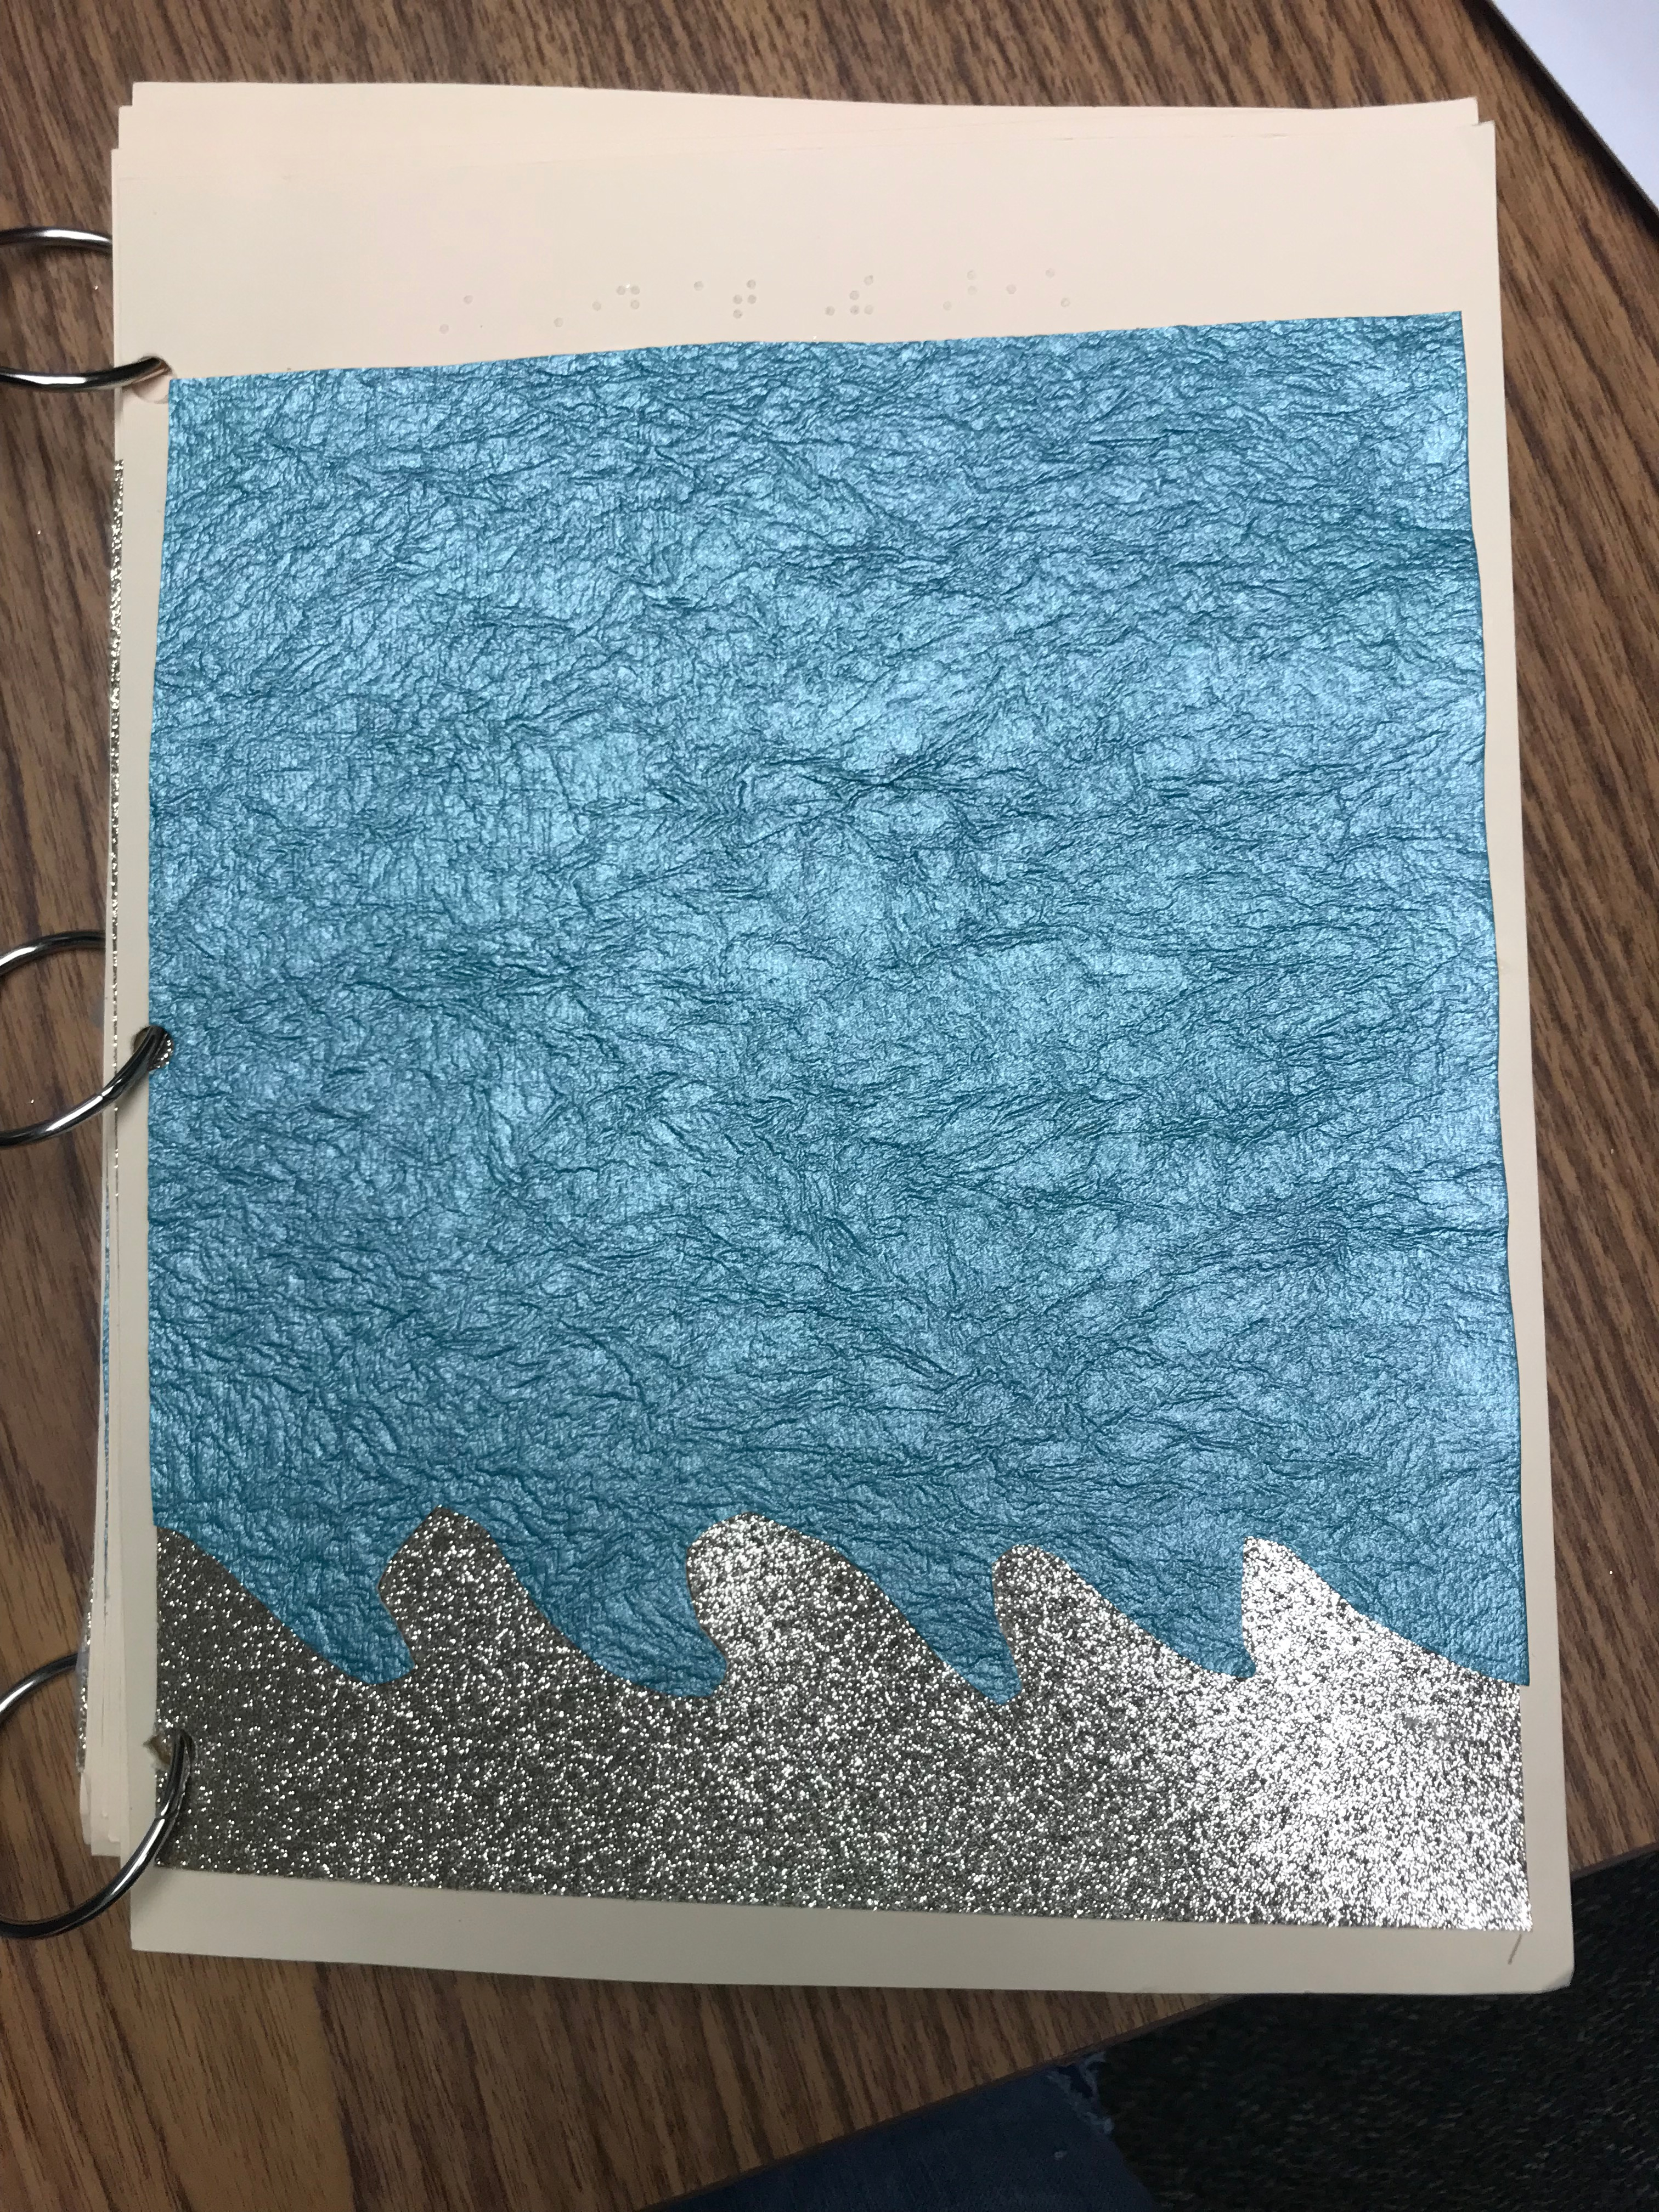 Title Page: Blue wrinkled-textured sky with silver sparkle waves.